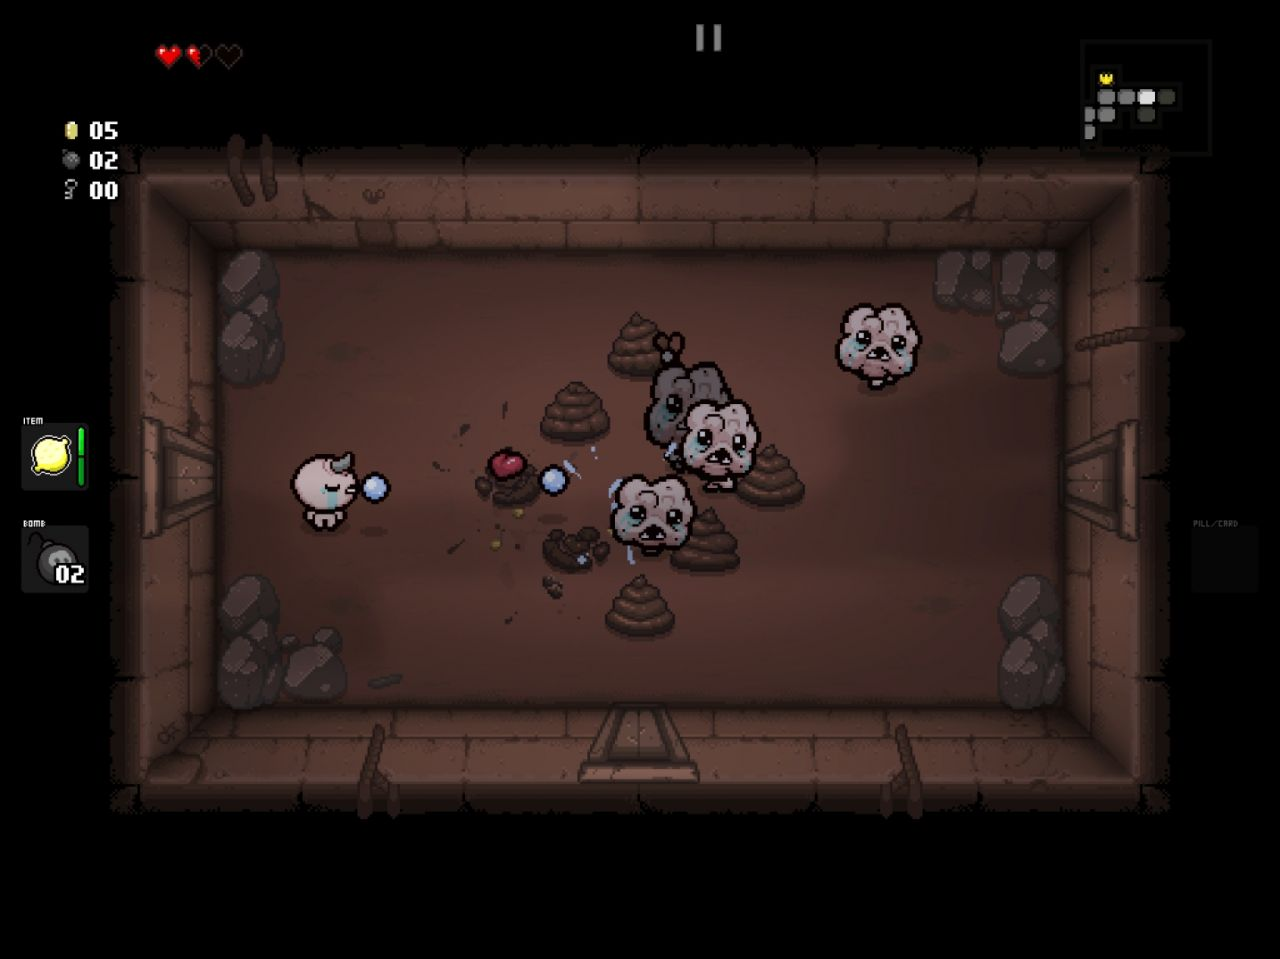 The Binding of Isaac: Rebirth (copie d'écran 11 sur iPhone / iPad)